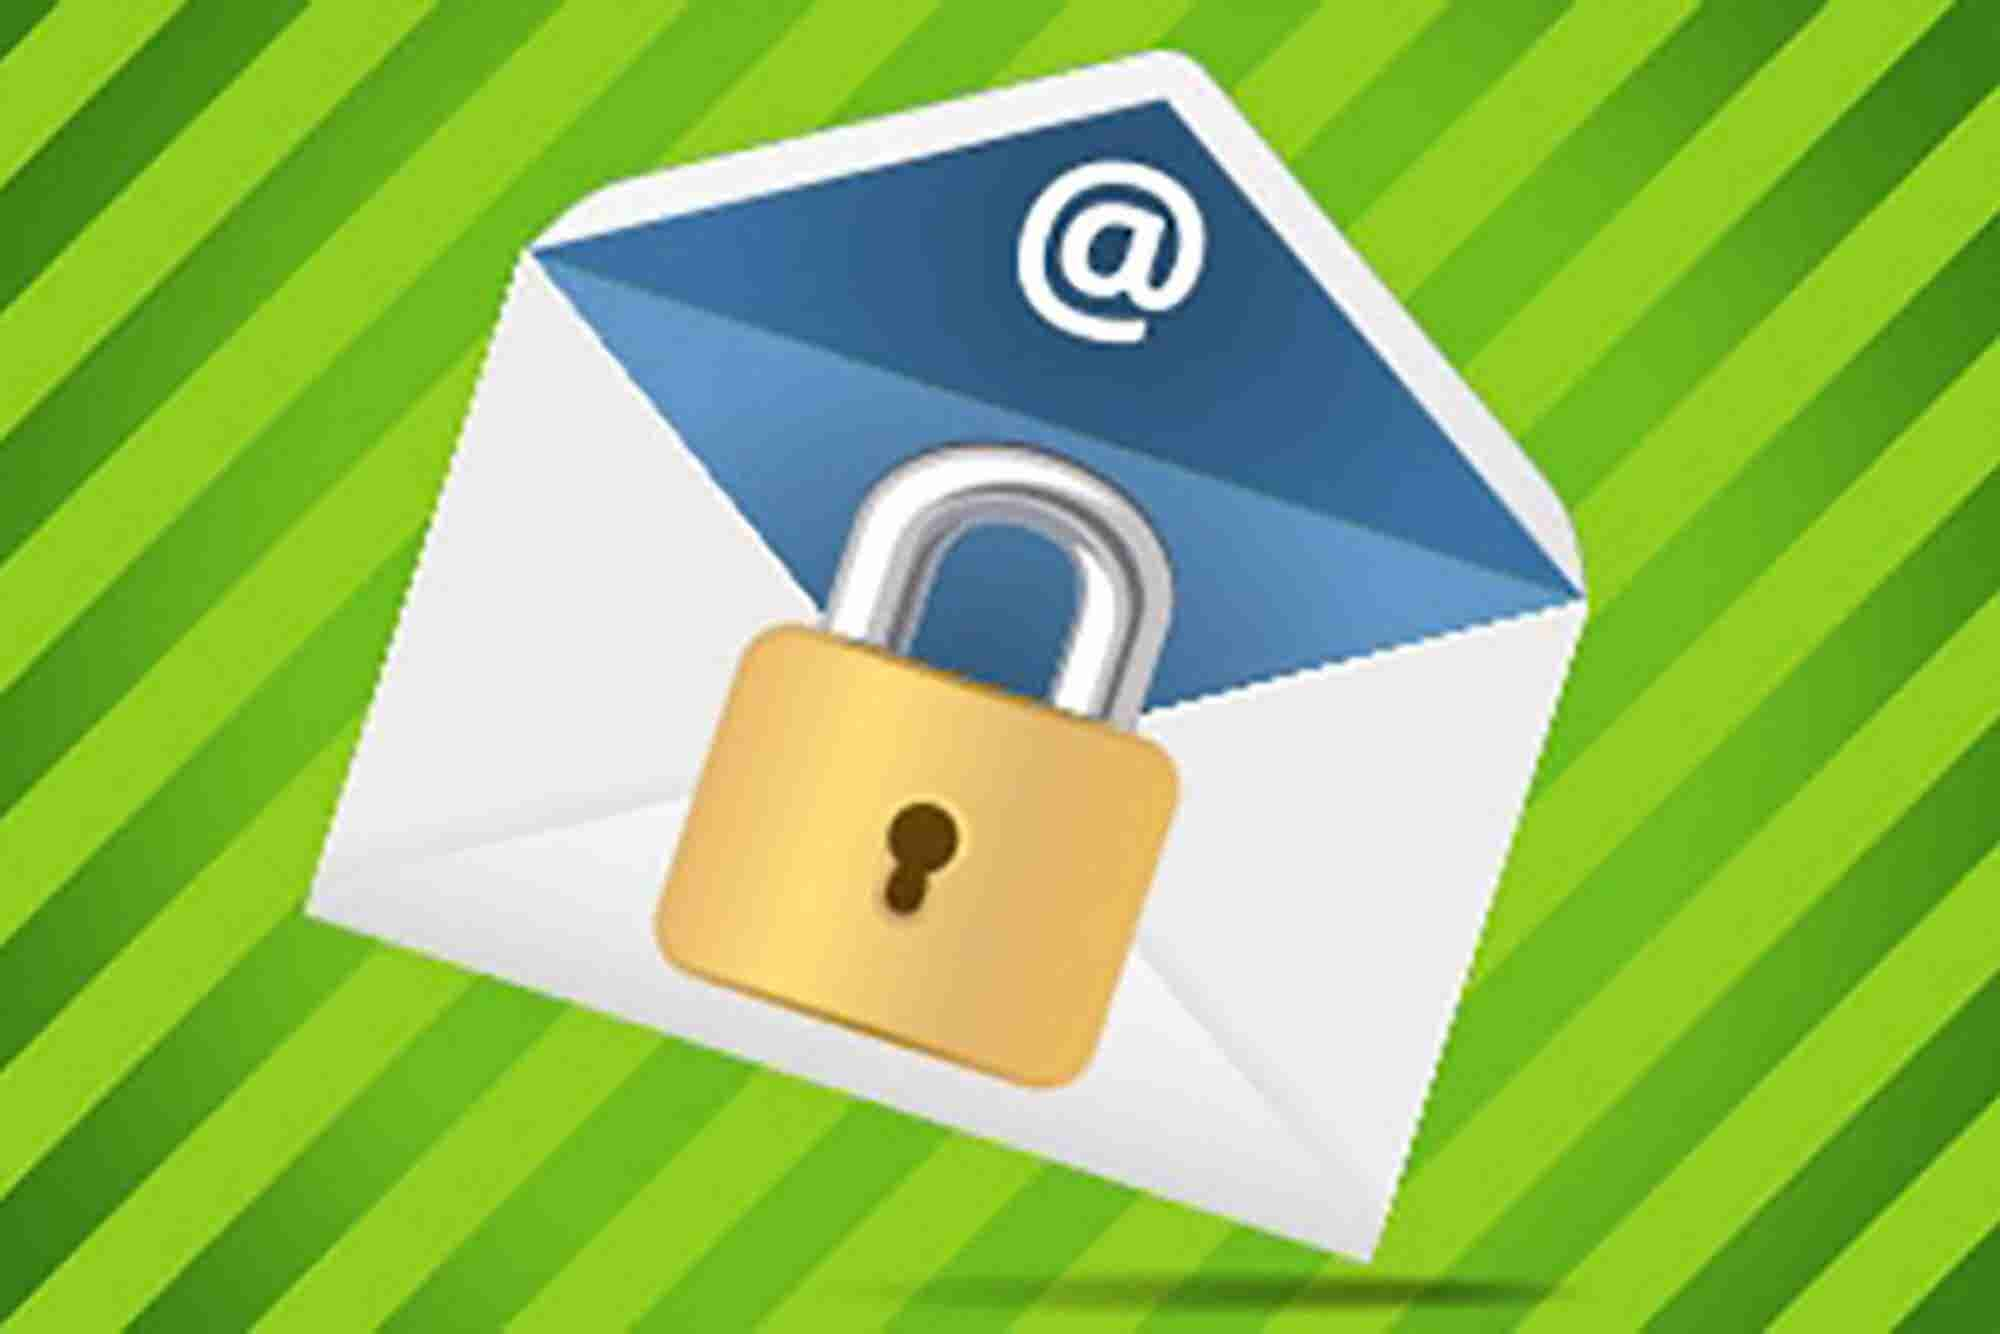 5 Easy-to-Use Tools to Make Business Email More Secure